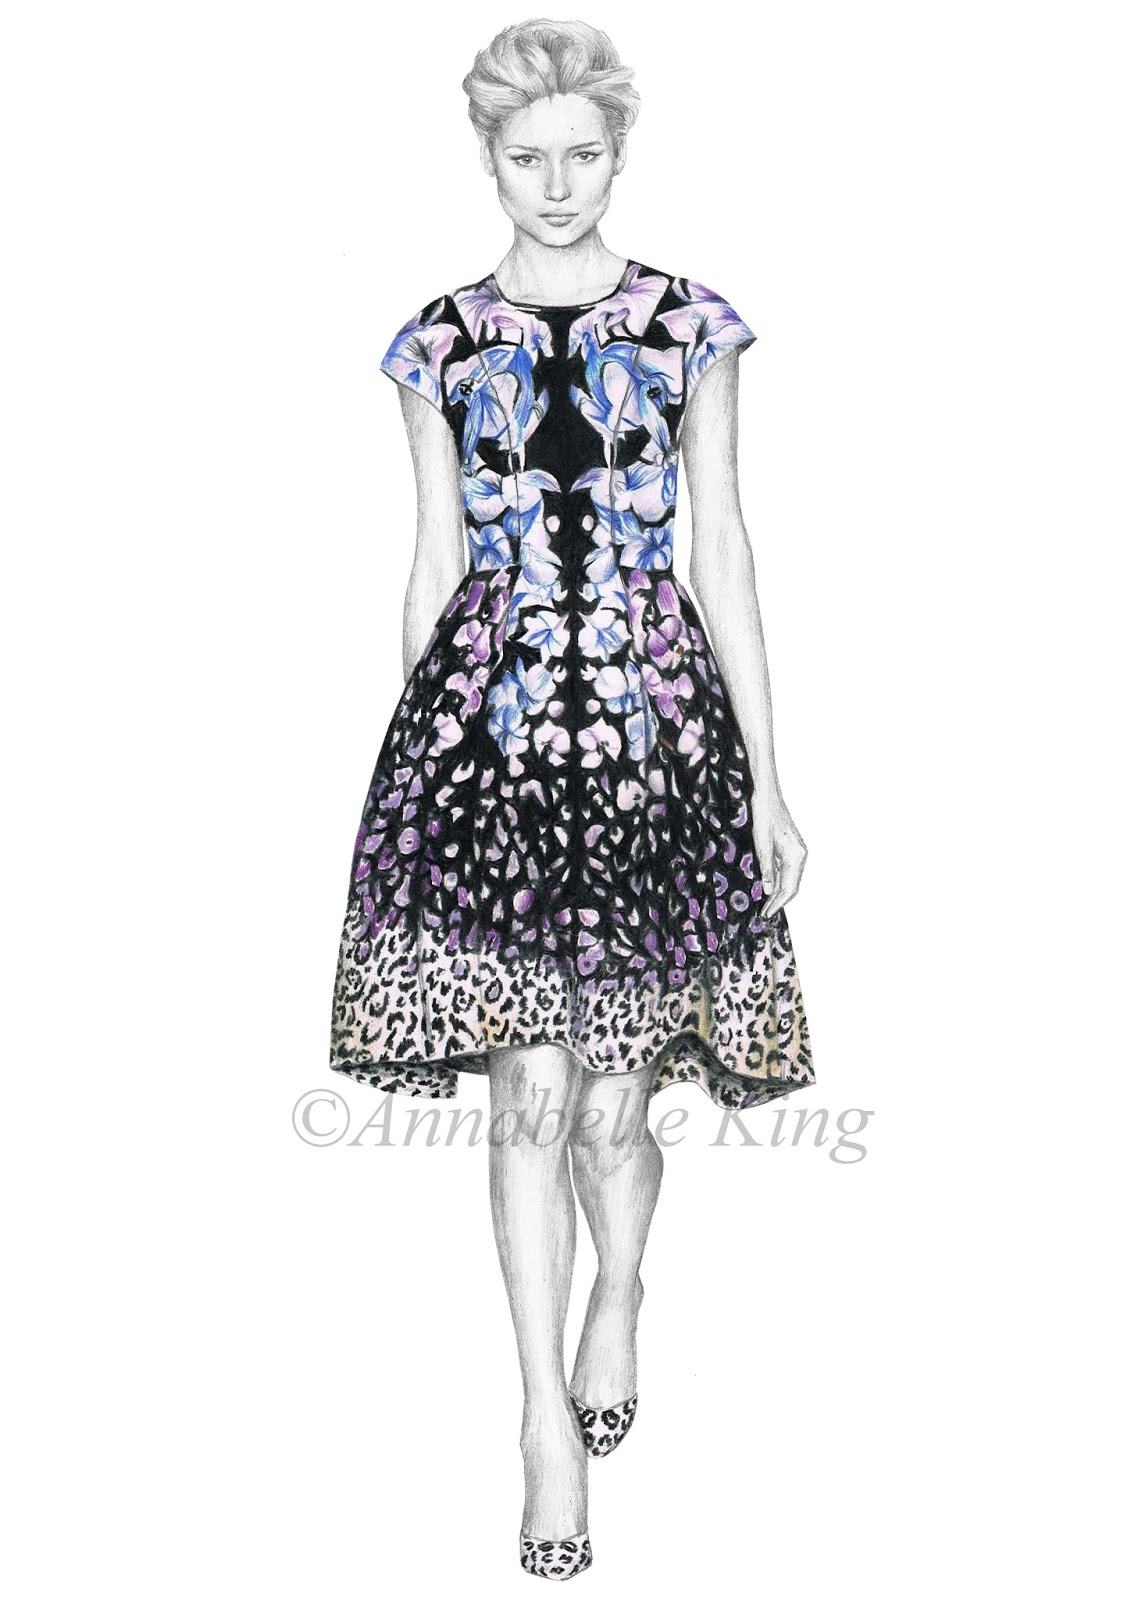 http://www.etsy.com/uk/listing/163565338/original-temperley-london-fashion?ref=shop_home_active_4